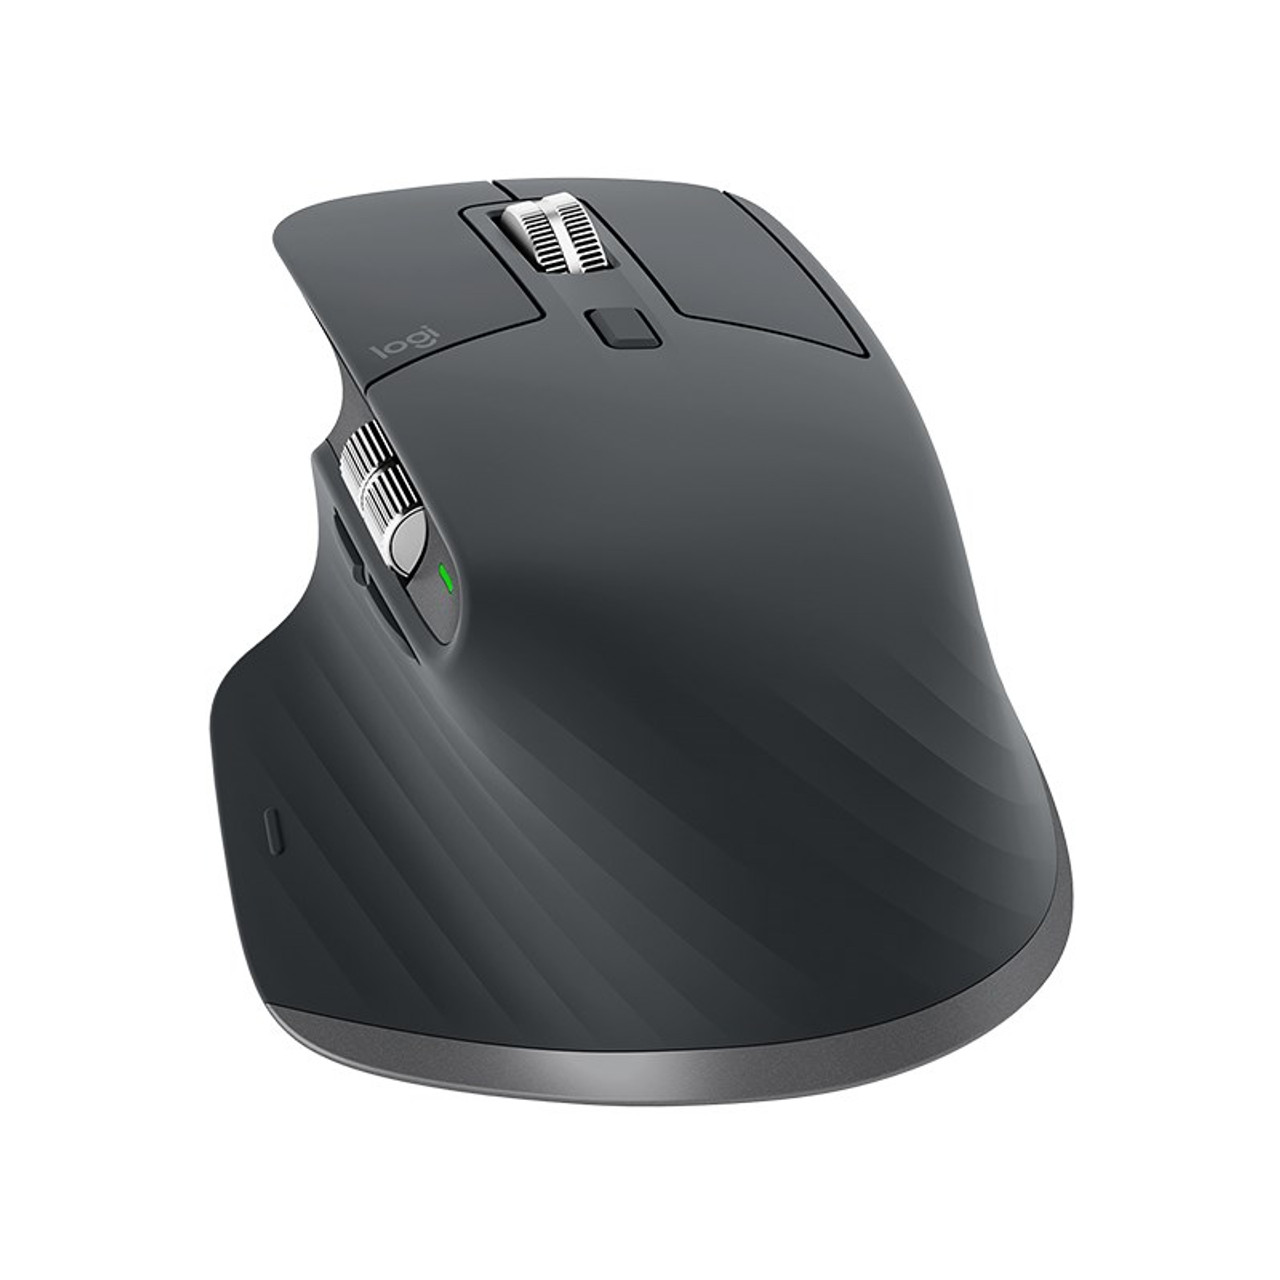 Image for Logitech MX Master 3 Wireless Mouse - Graphite CX Computer Superstore